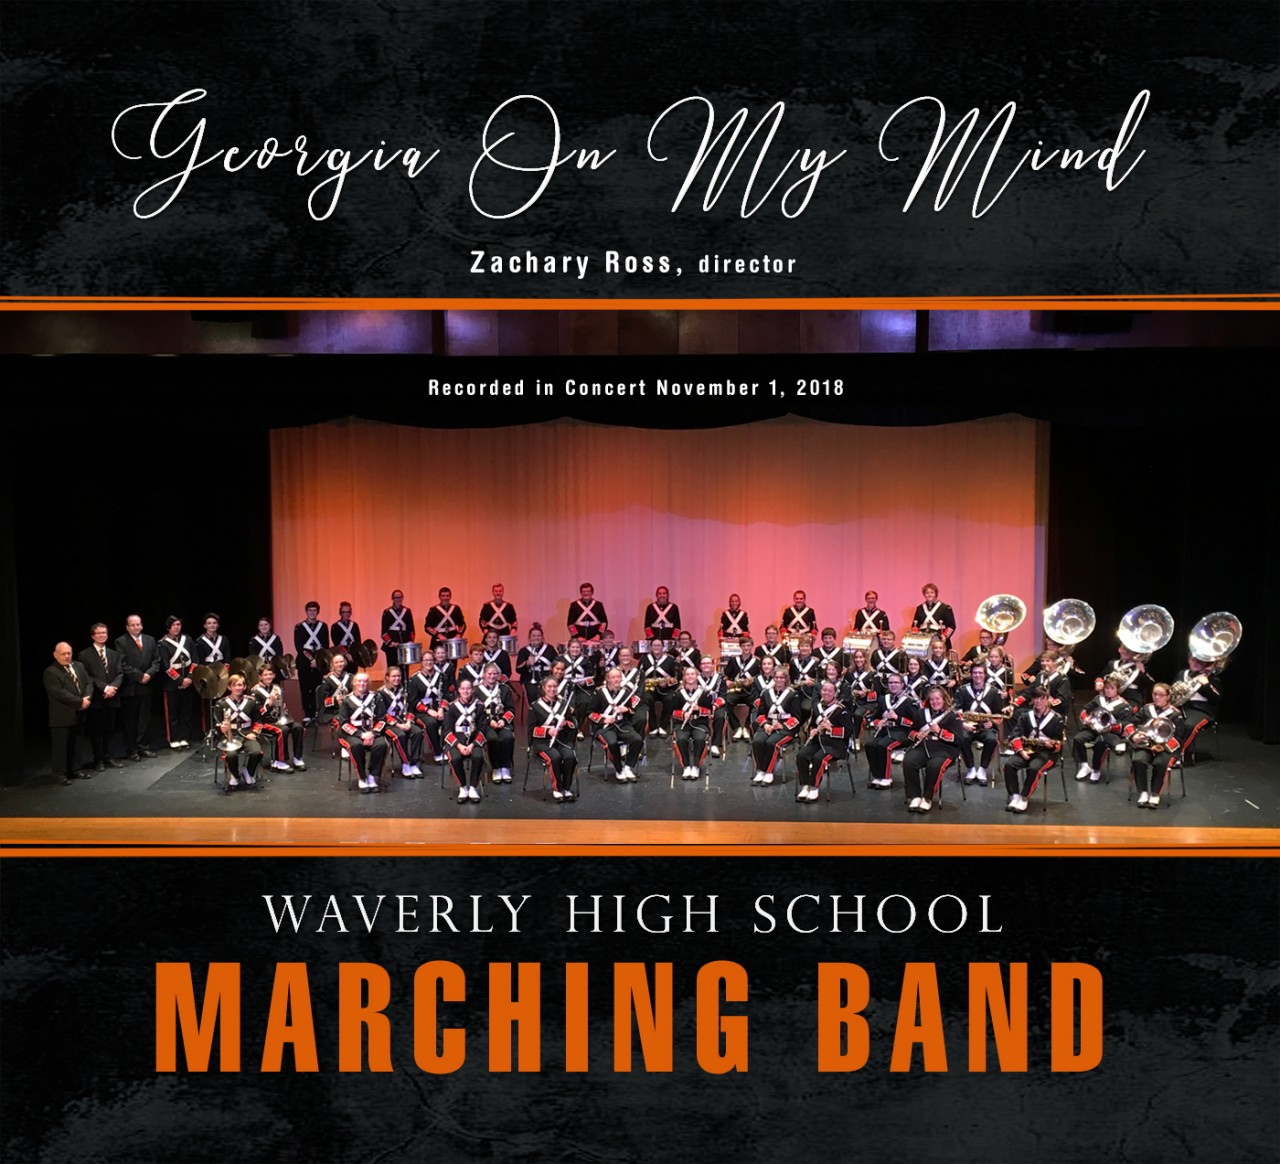 Waverly High School Marching Band 11/1/2018 CD - Soundwaves